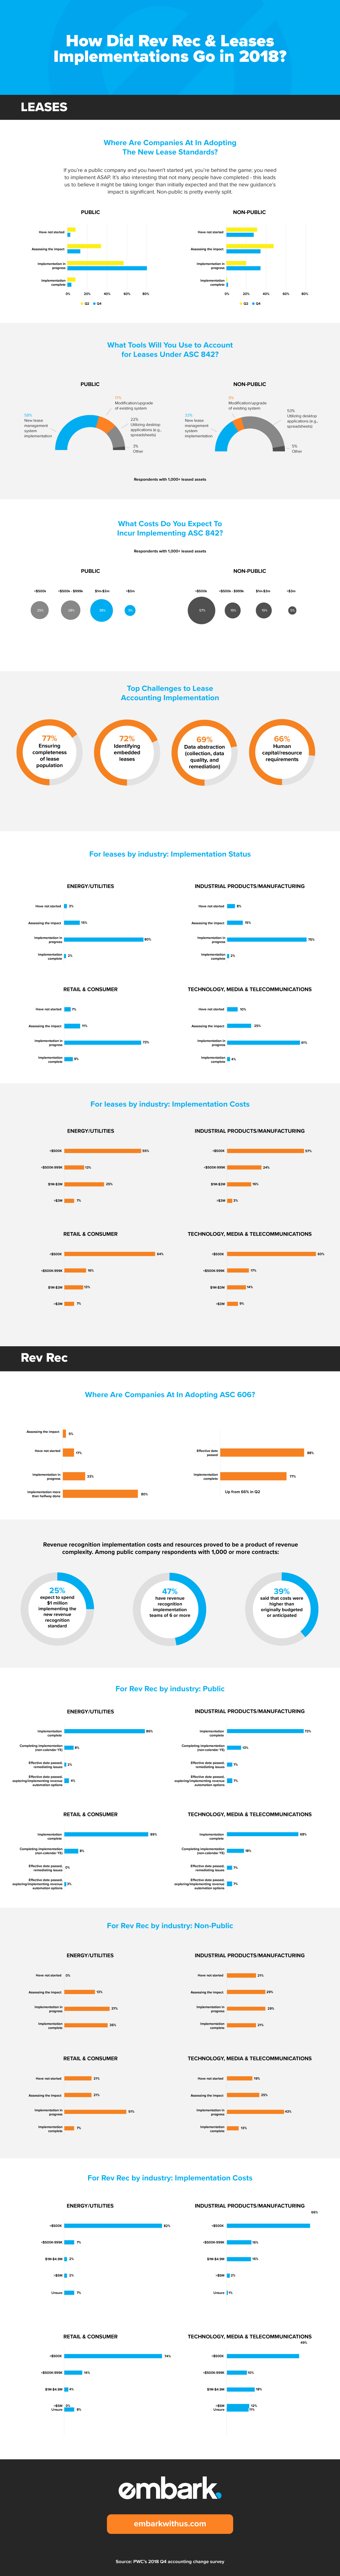 embark_infographic_How-Did-Rev-Rec-&-Leases-Implementations-Go-in-2018-